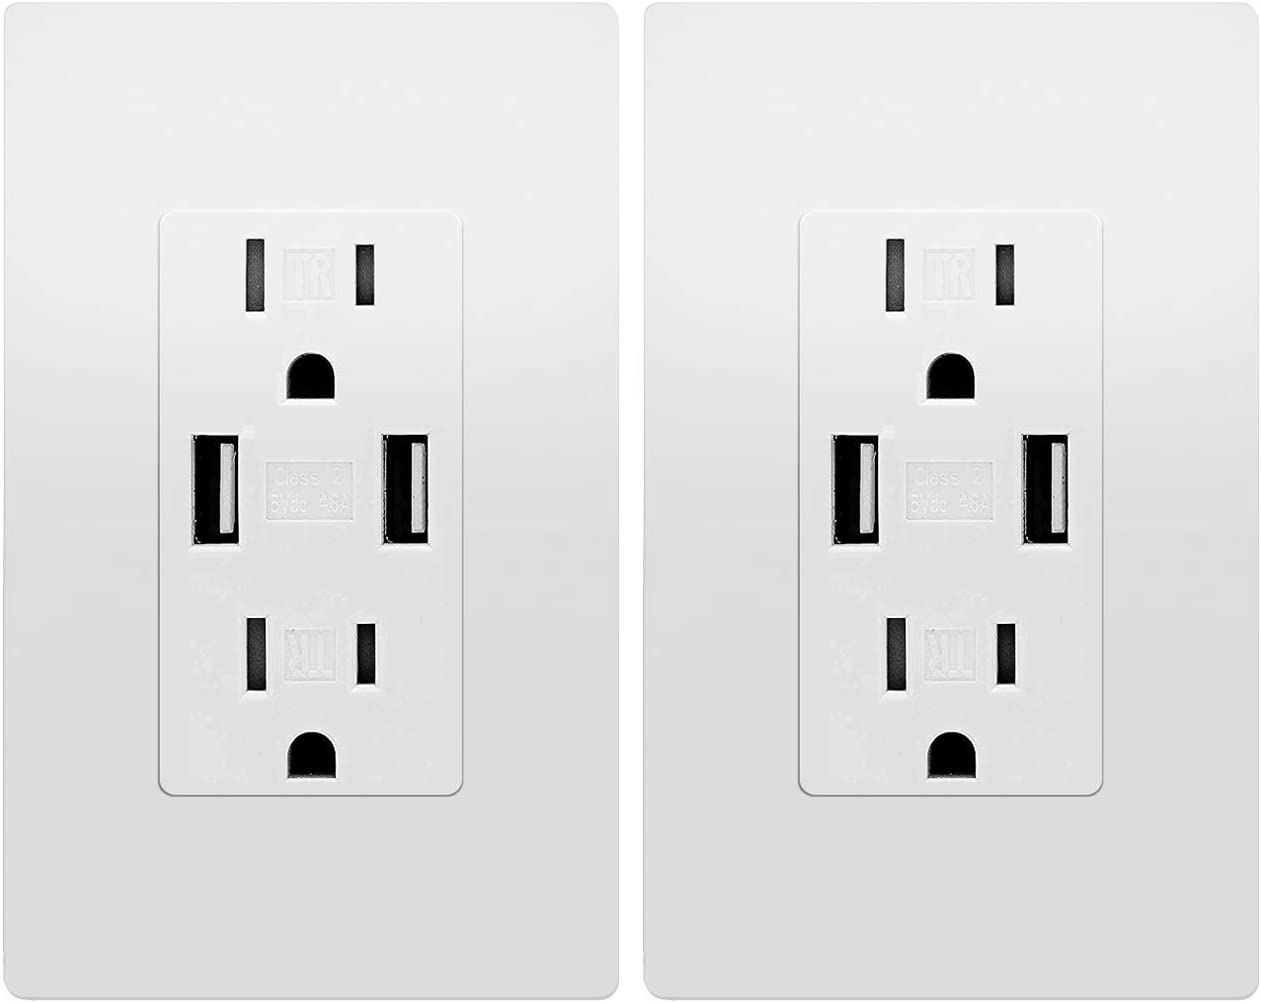 USB Outlet, Wall Charger Dual High Speed Duplex Receptacle 15 Amp, Smart 4.8A Quick Charging Capability, Tamper Resistant Outlet Wall Plate Included UL Listed White MICMI C48, 4.8A USB outlet 2pack